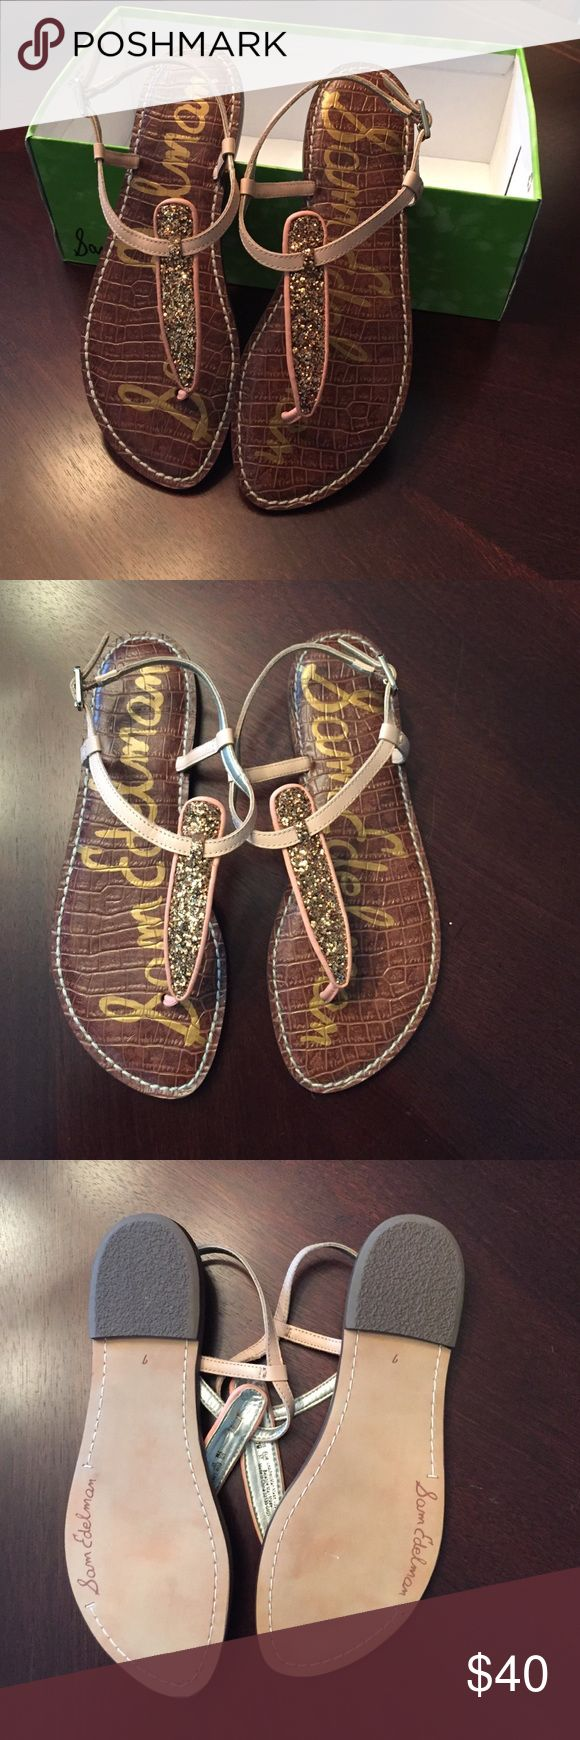 NEW Sam Edelman Gigi Sandals Size 7! Brand new in box (top of box is missing) Sam Edelman Papaya pink and nude glitter sandals! Size 7! My favorite style of sandals! I personally own two other pairs! Can easily be dressed up or dressed down :) Sam Edelman Shoes Sandals